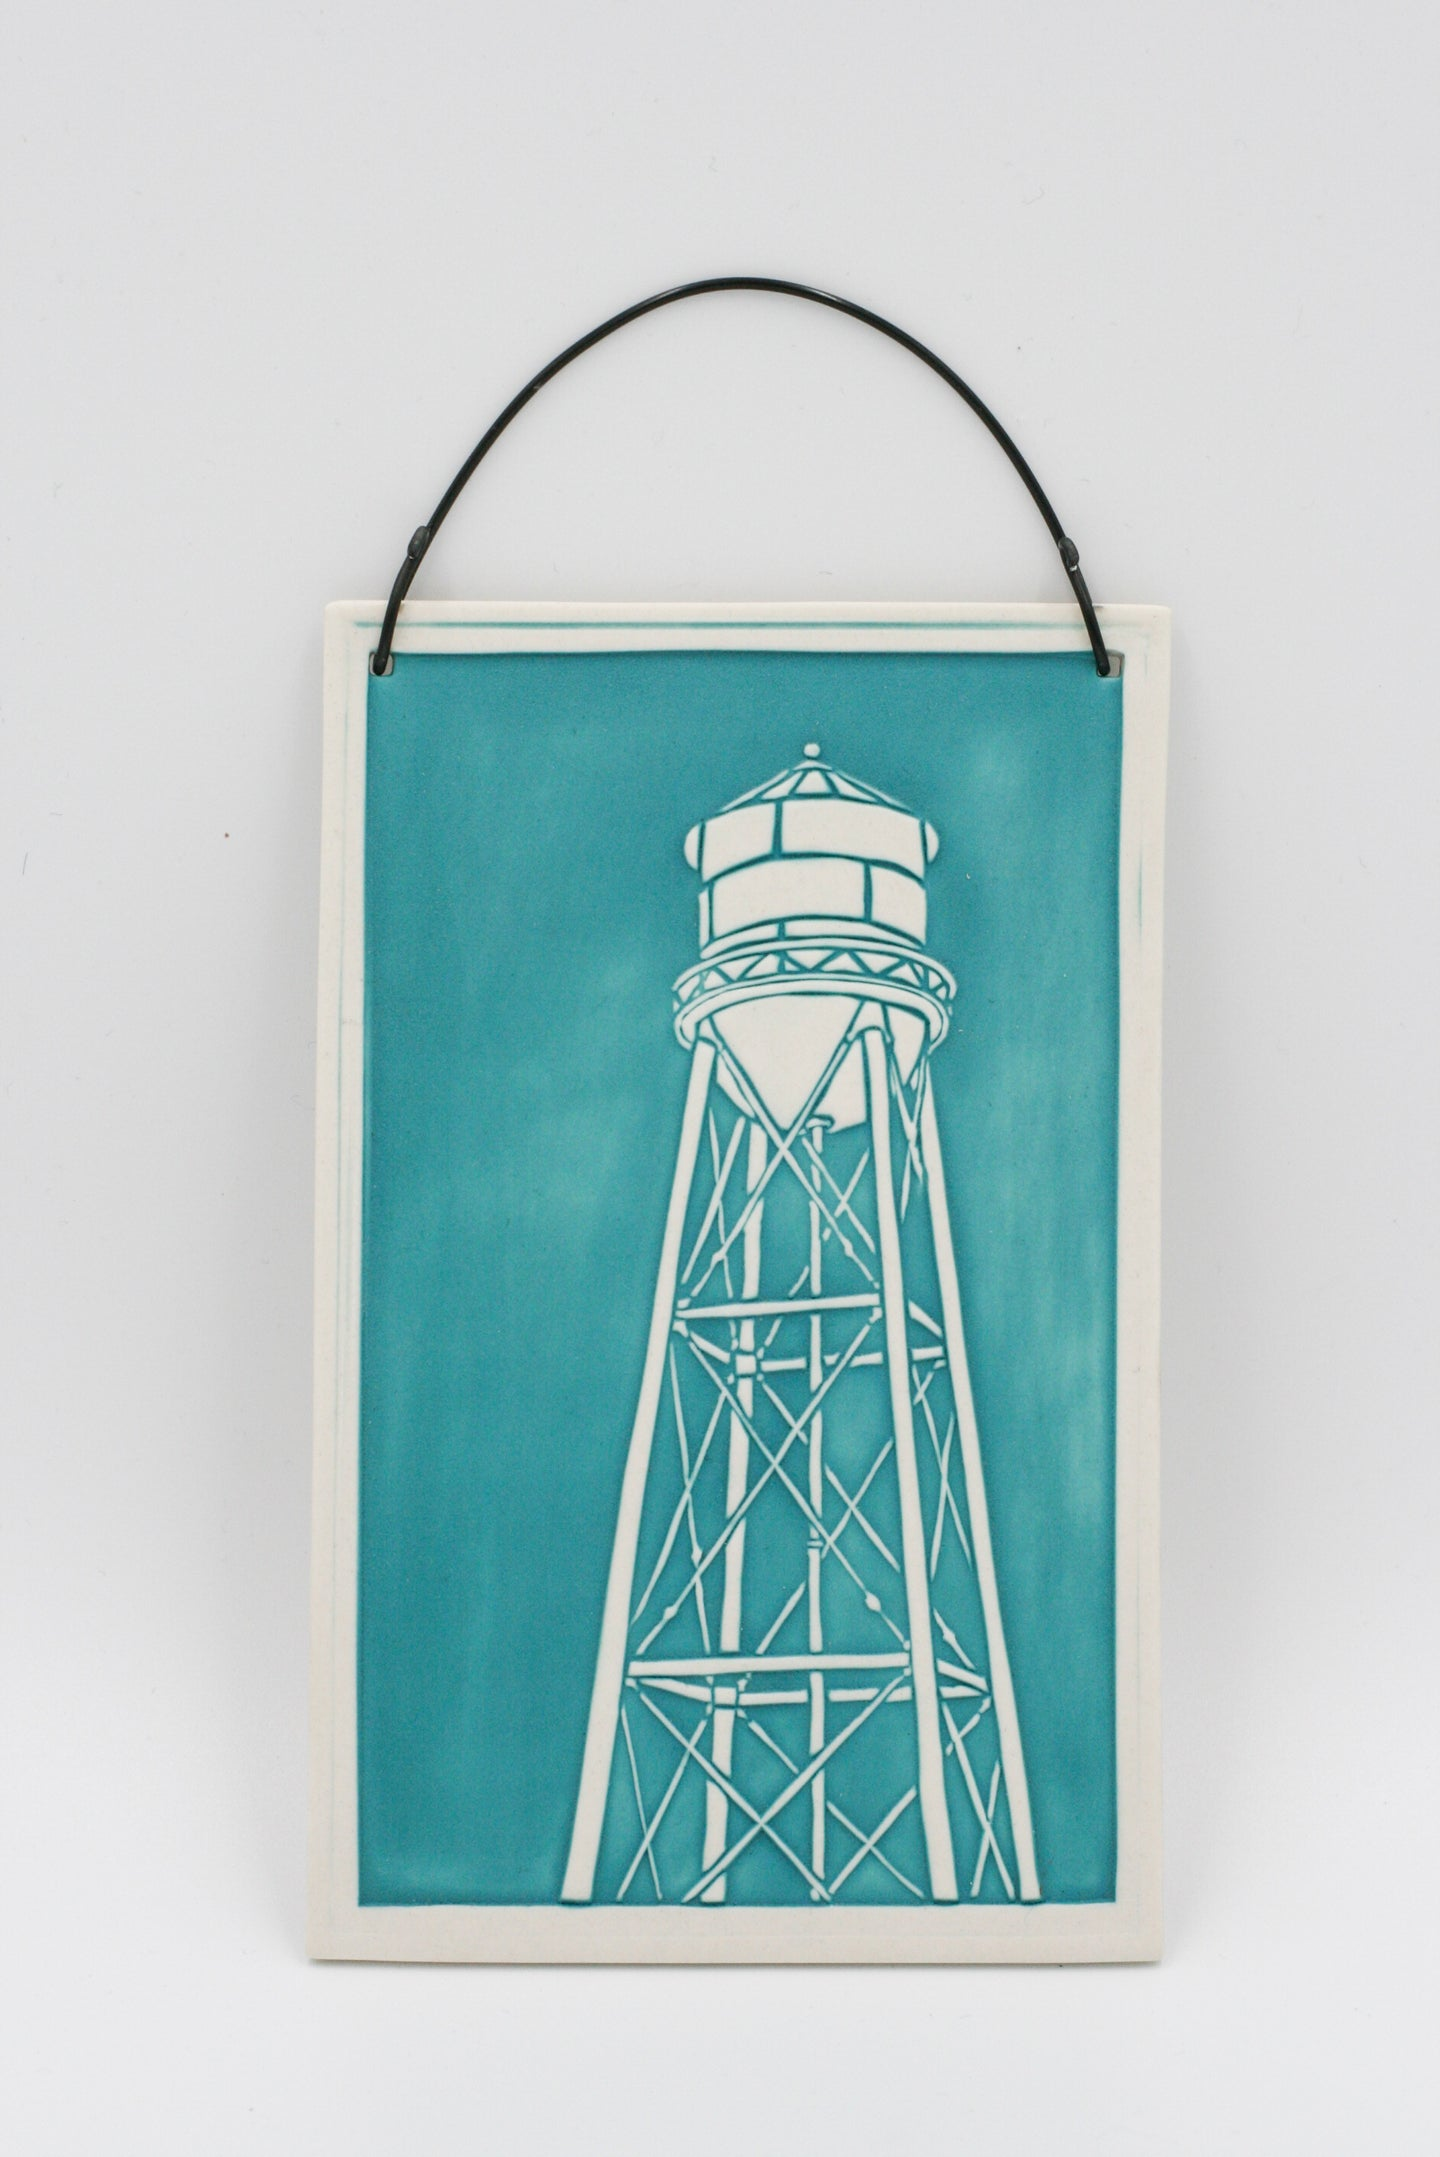 Sarah Gregory: Aqua Water Tower